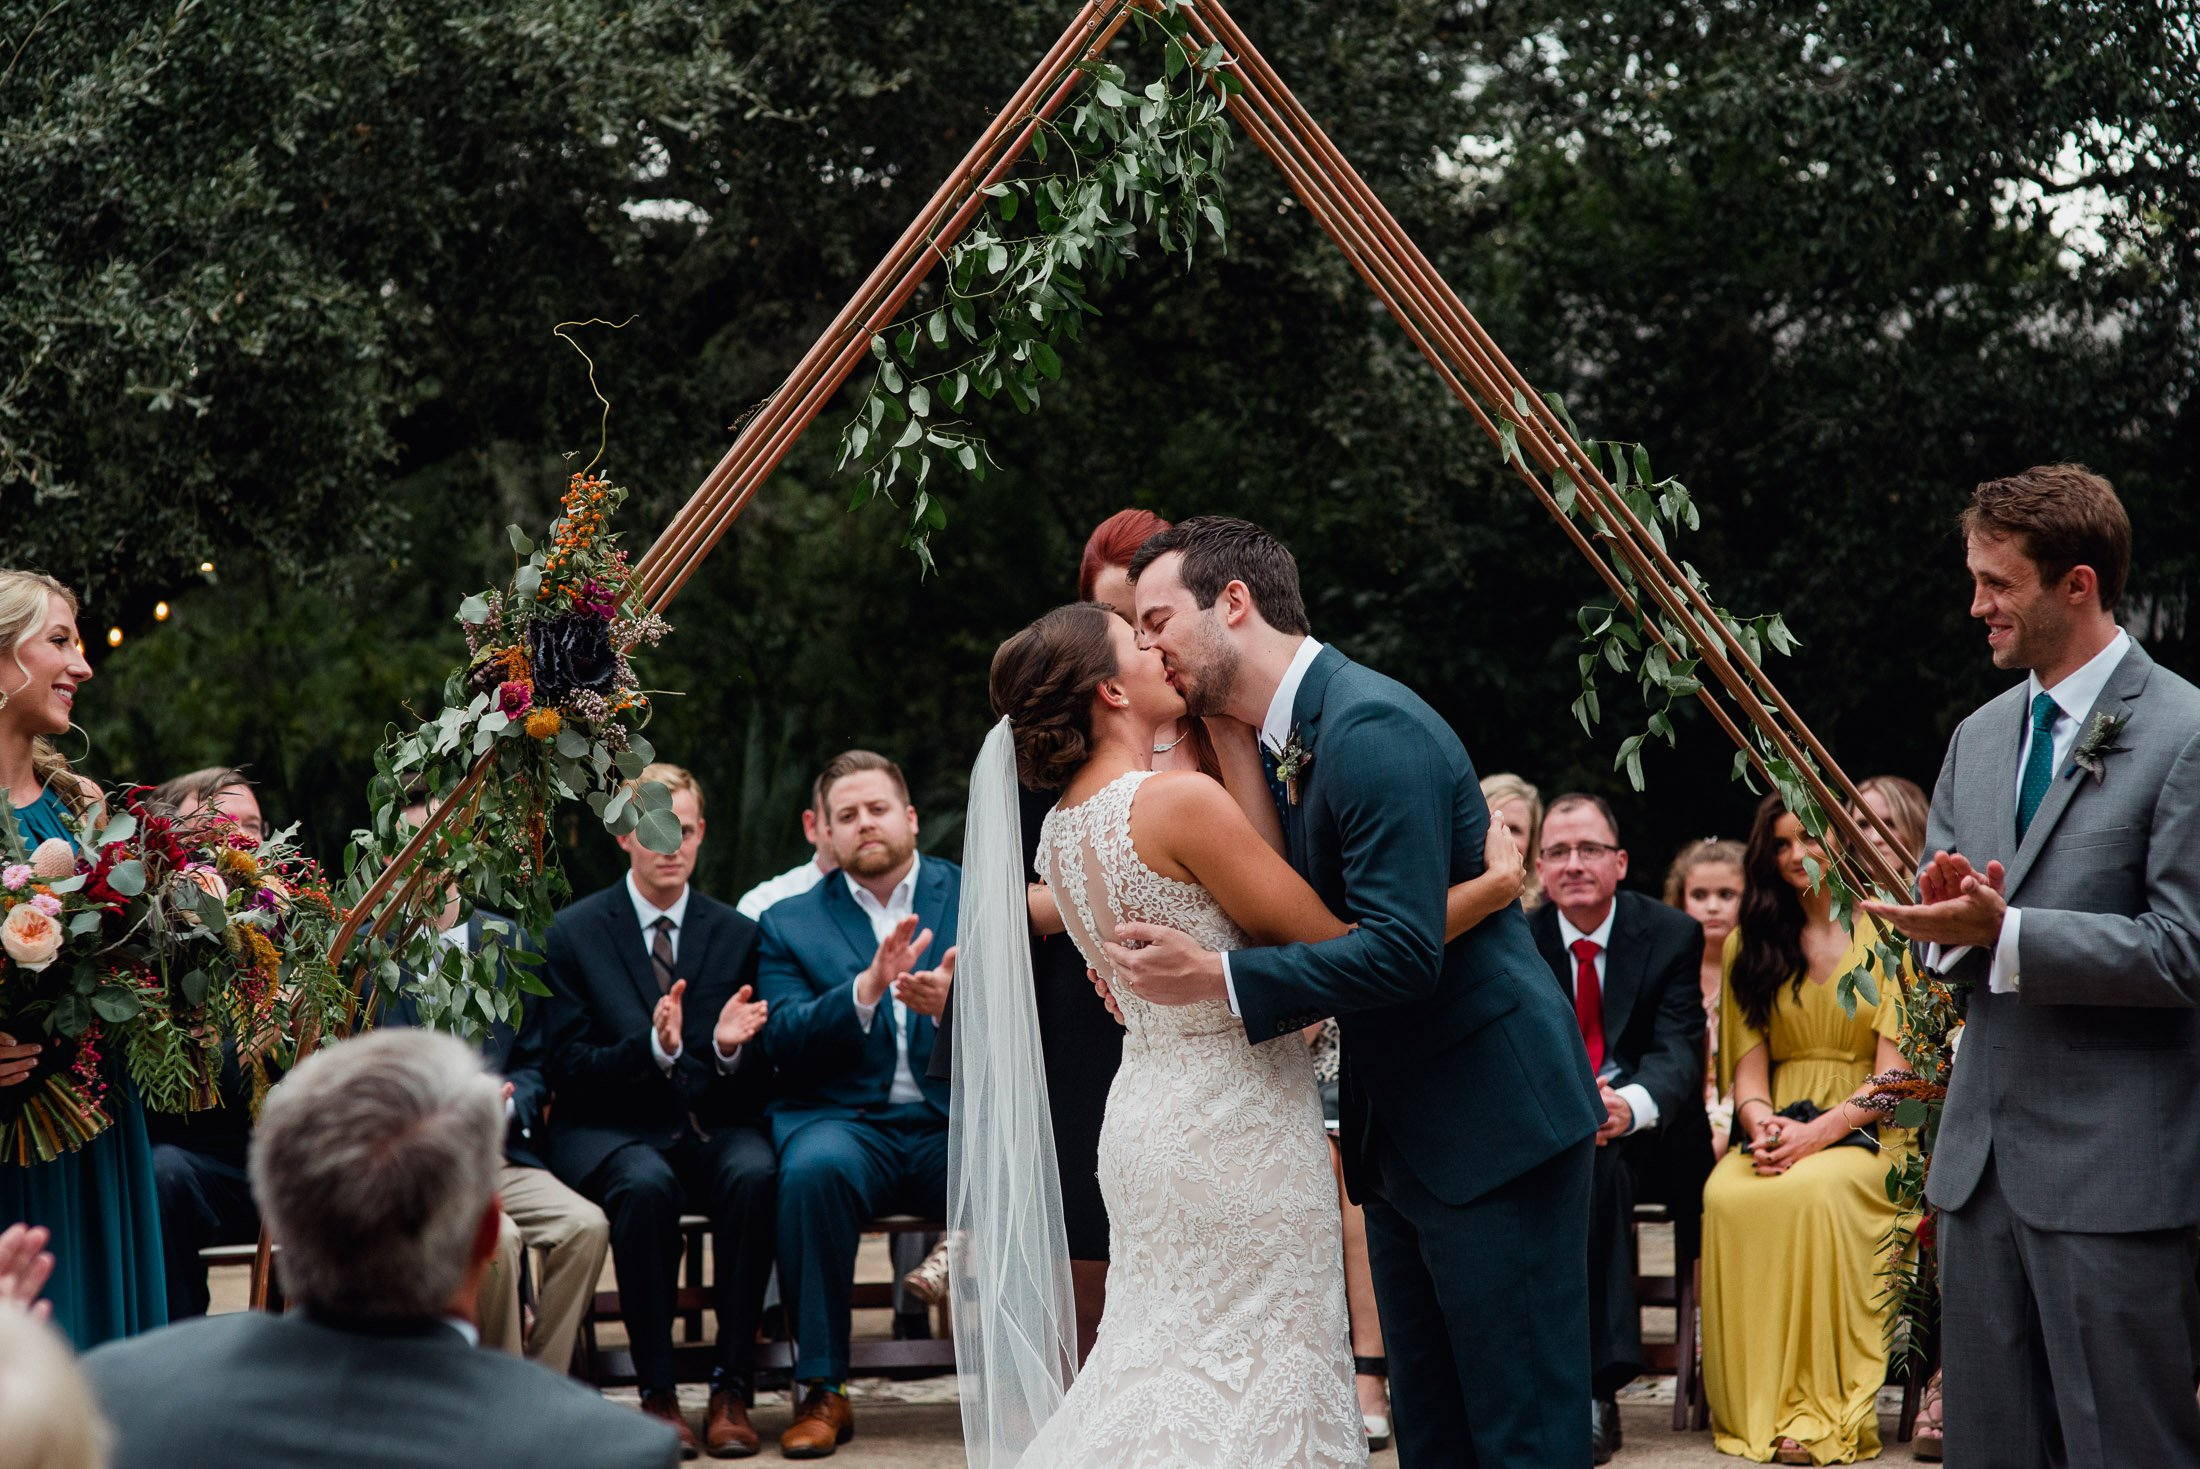 first kiss under a copper triangular arch decorated with flowers at the greenhouse at driftwood, central texas wedding vendors, non-traditional austin wedding photography, colorful and timeless wedding photos in austin, professional wedding photographers in austin texas